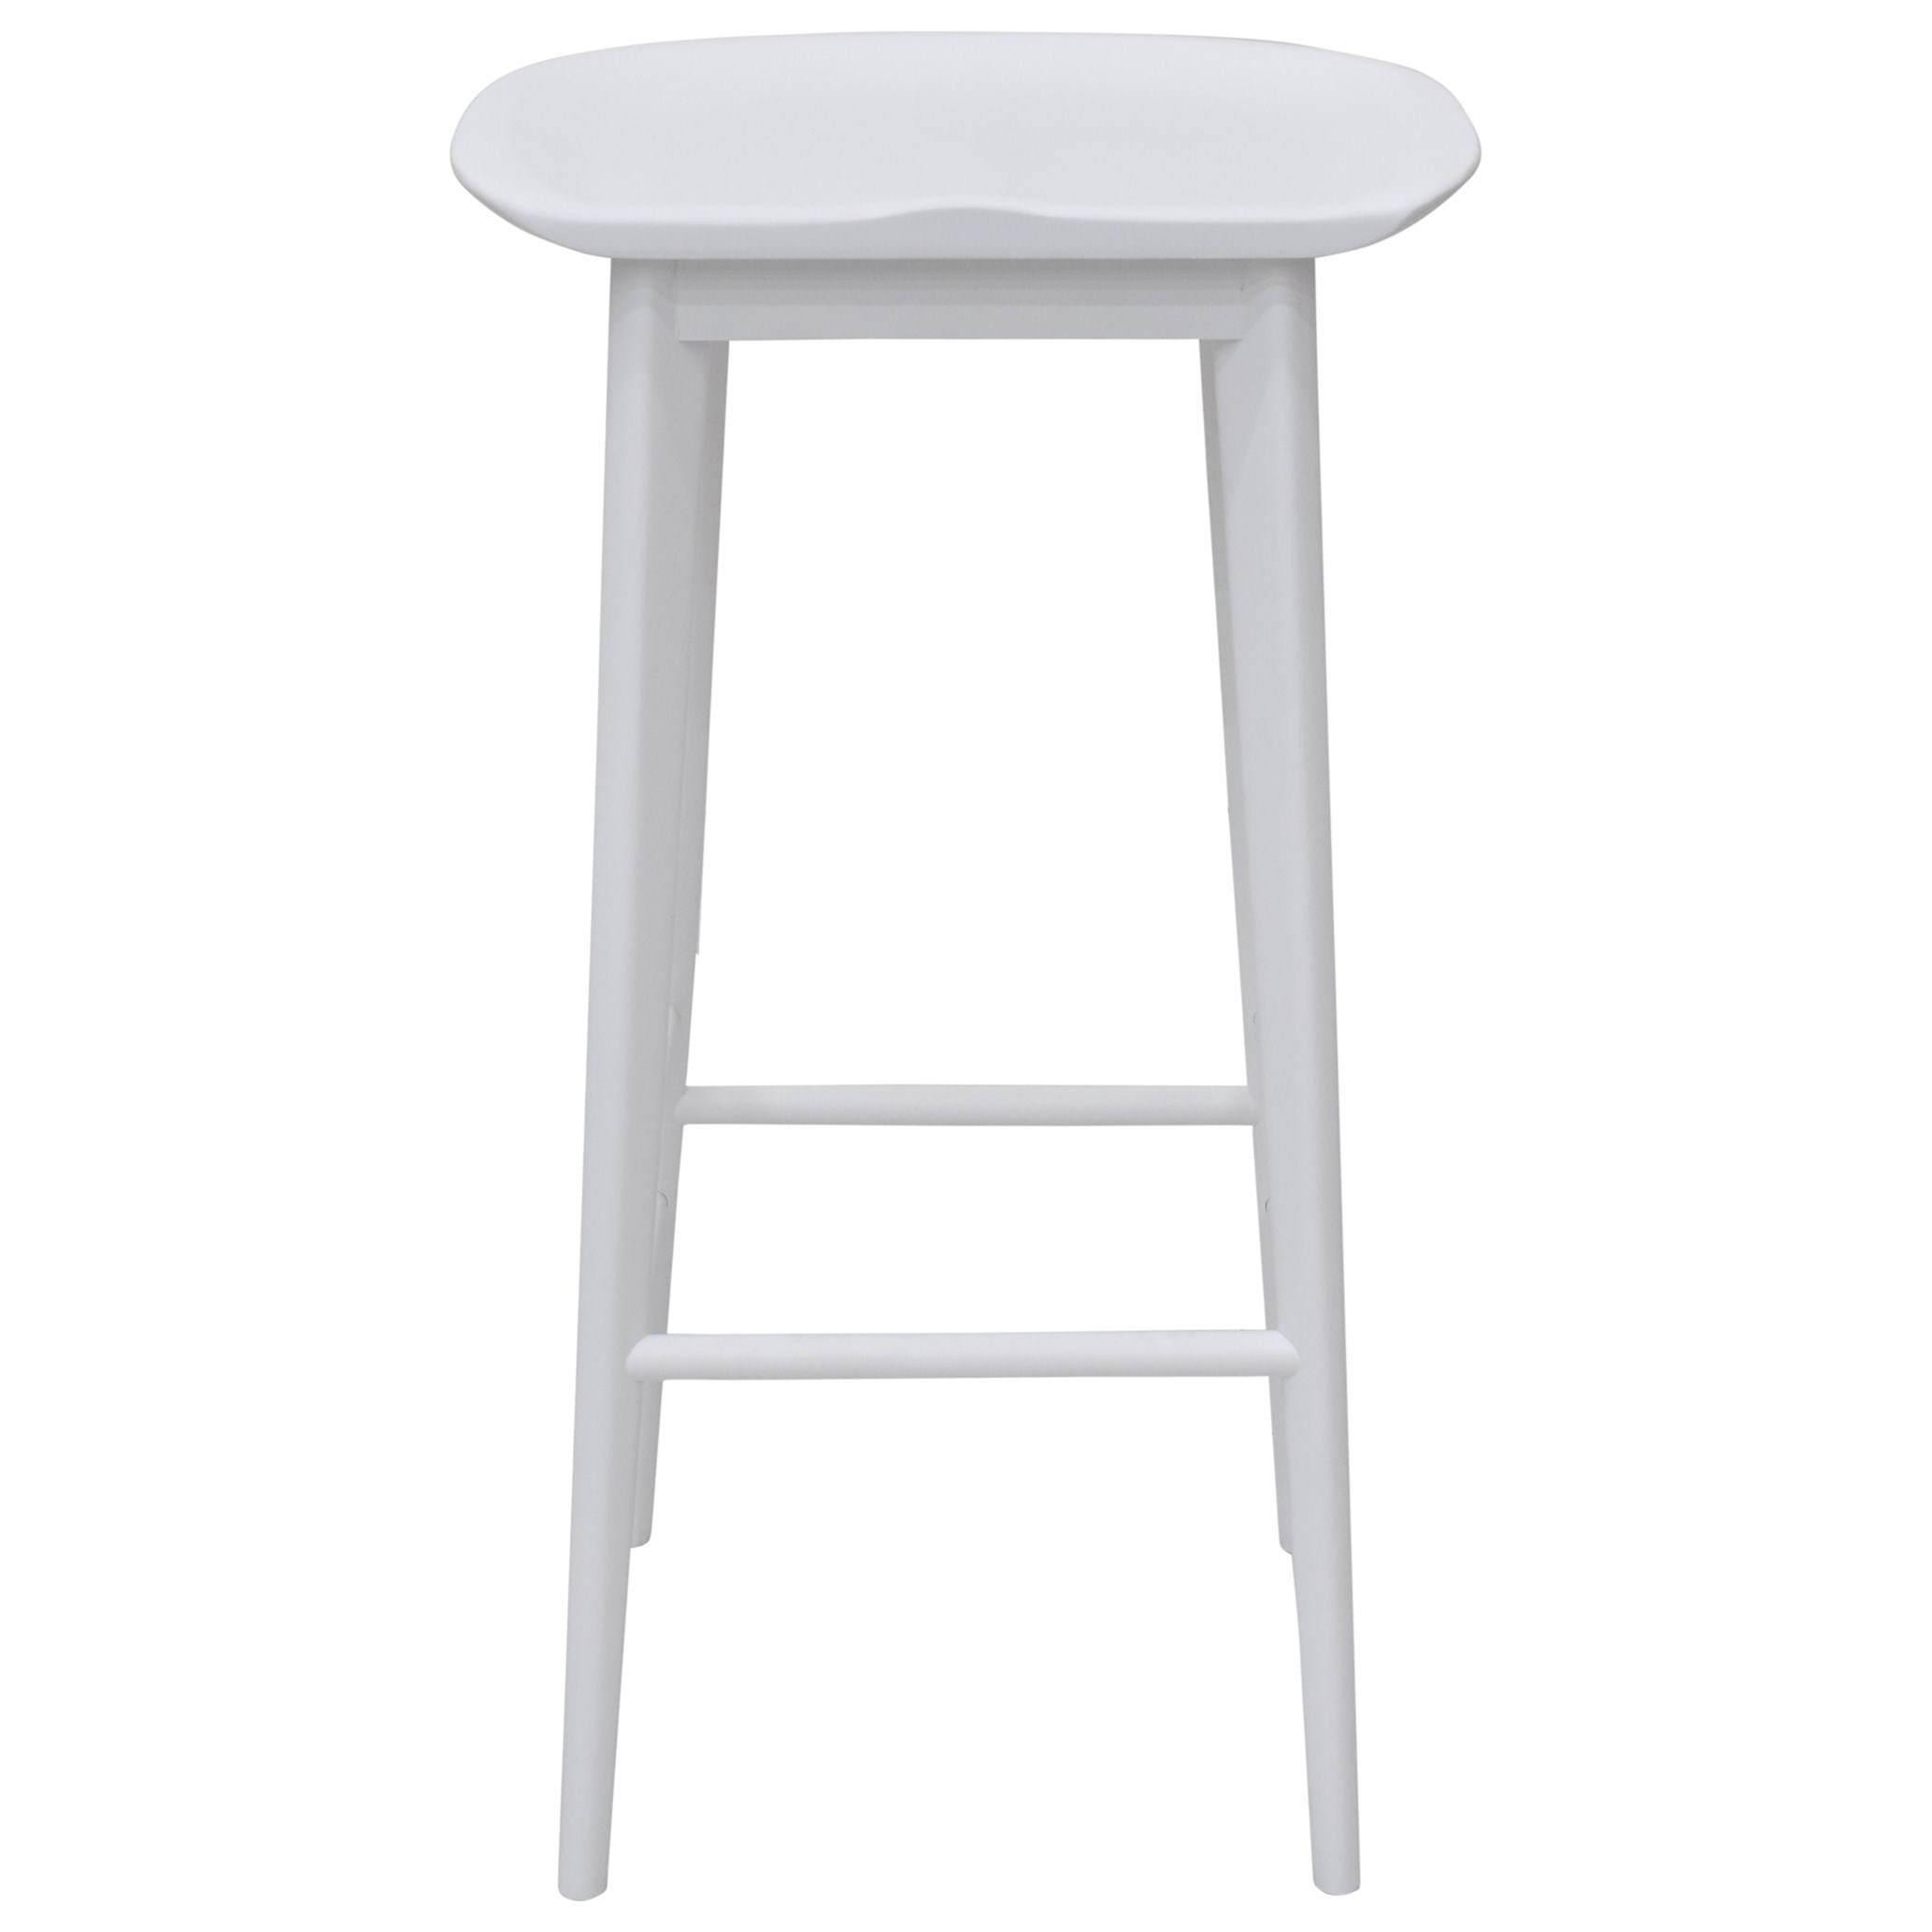 Hilton Counter Height Bar Stool by Steve Silver at Walker's Furniture